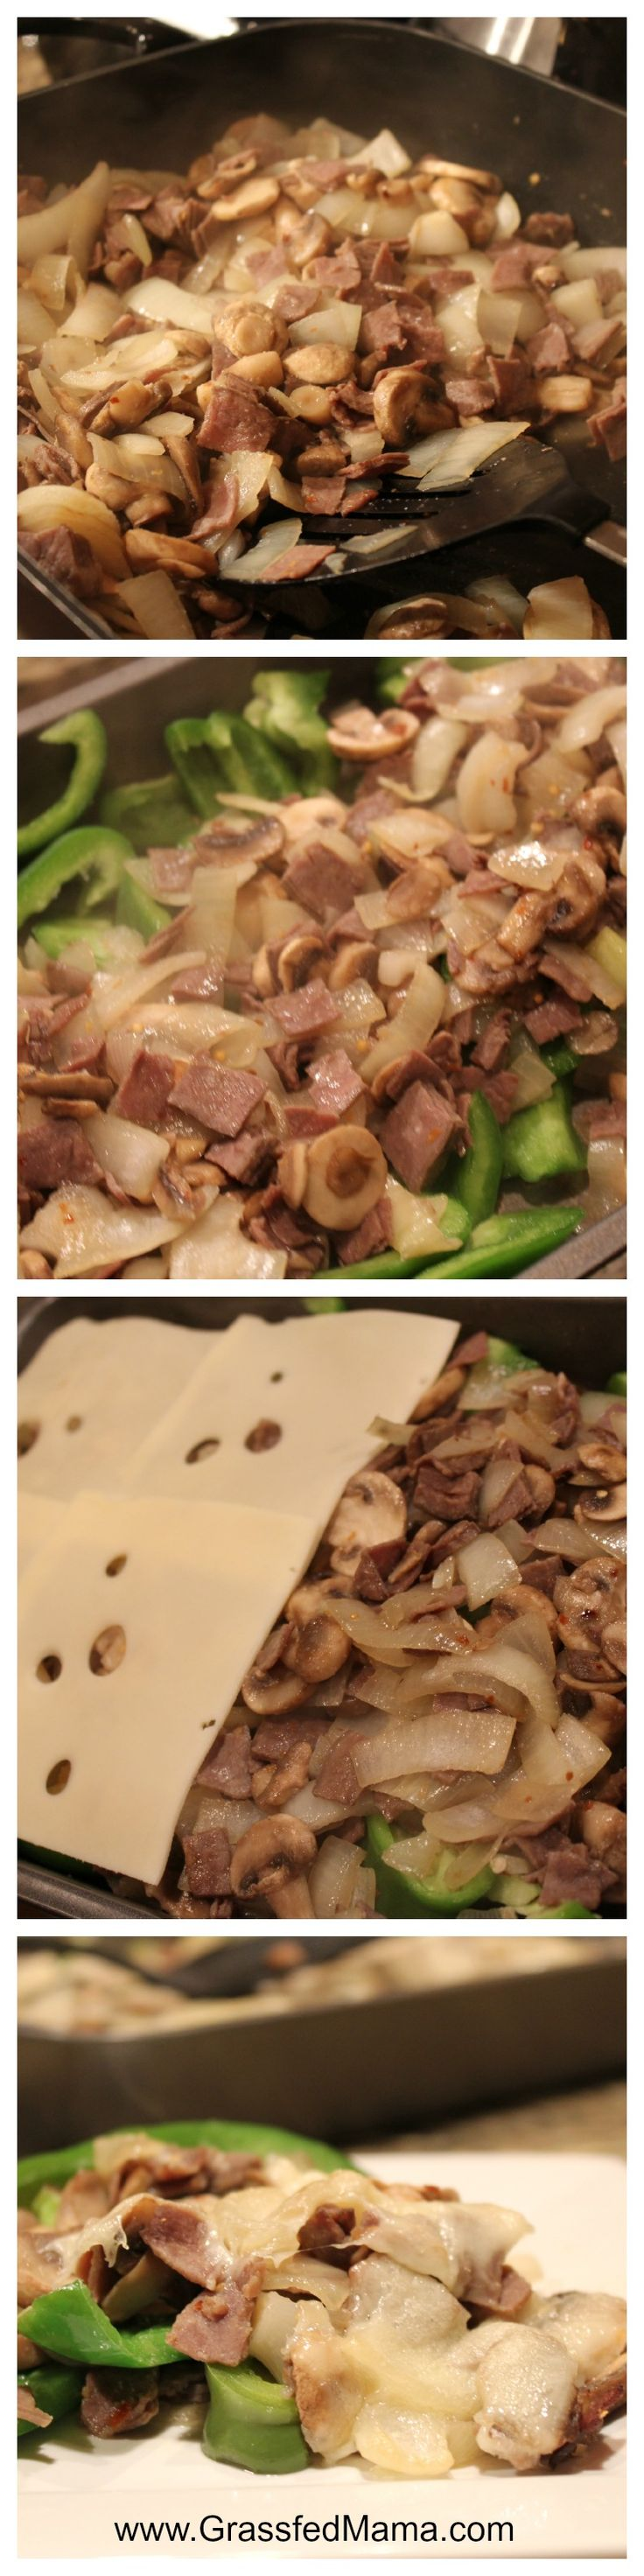 Low-Carb-Philly-Cheesesteak-Collage-Grassfed-Mama.jpg 750×3,000 pixels